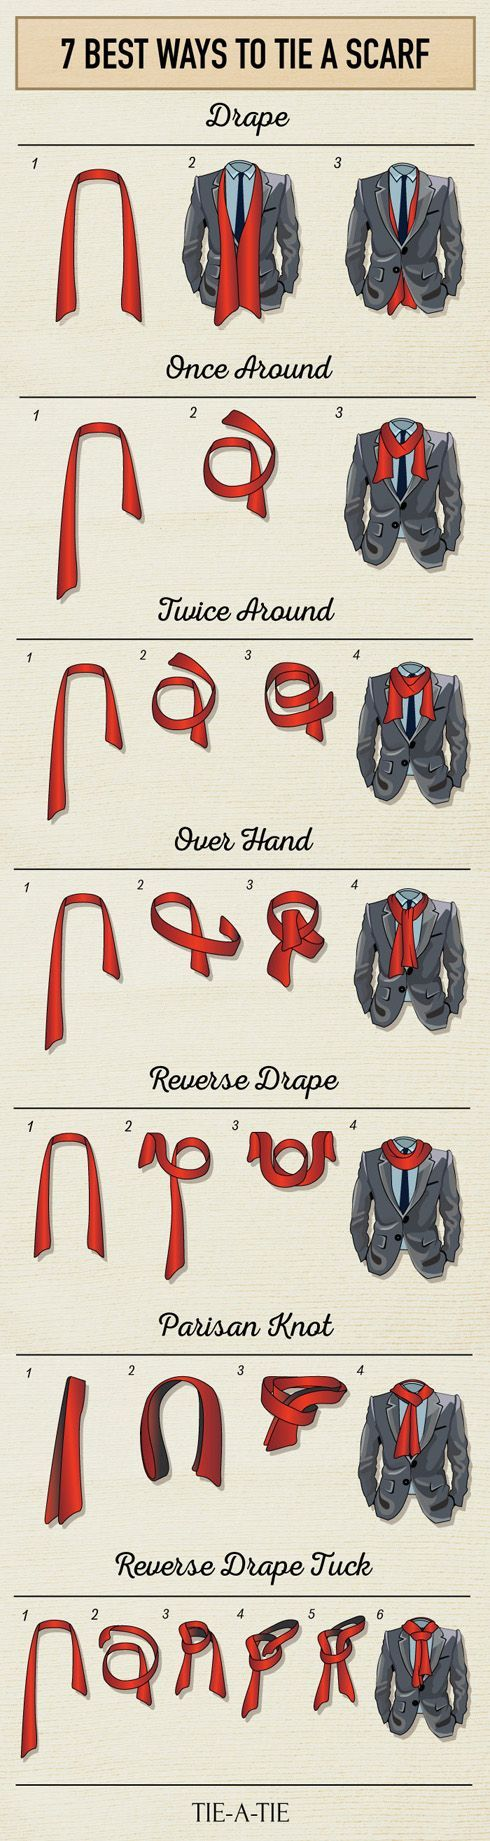 How to Tie a Scarf in Menswear - The 7 Best Ways to Tie a Mens Scarf